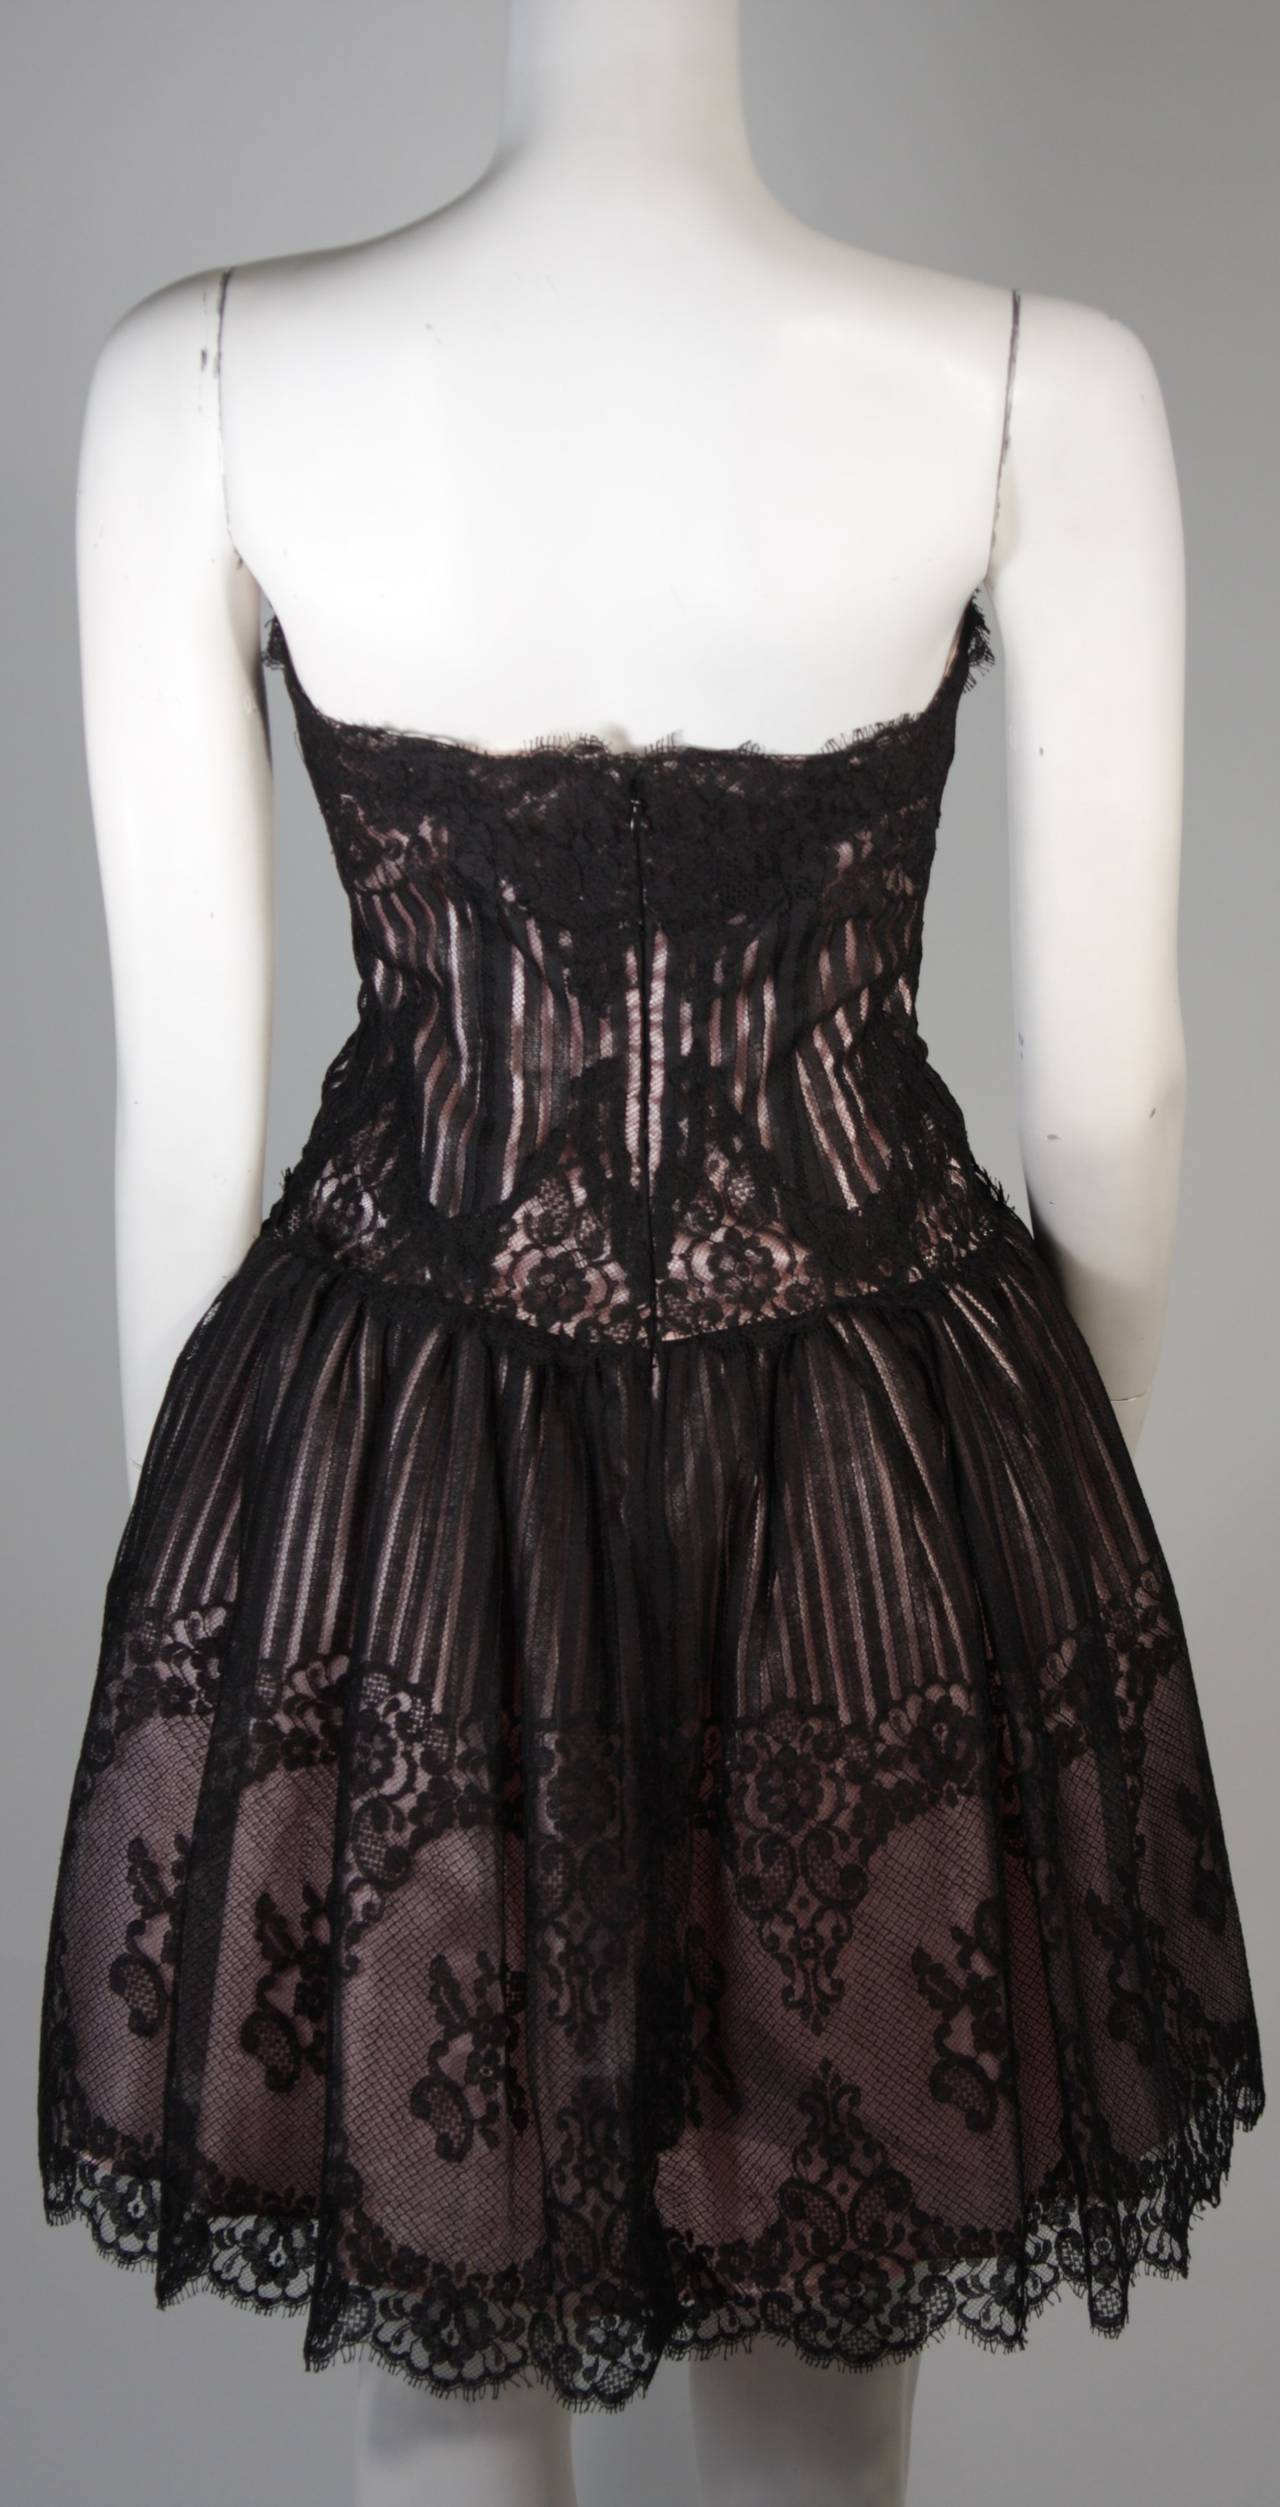 Victor Costa Strapless Black Lace Cocktail Dress with Pink Satin Size 40 For Sale 3